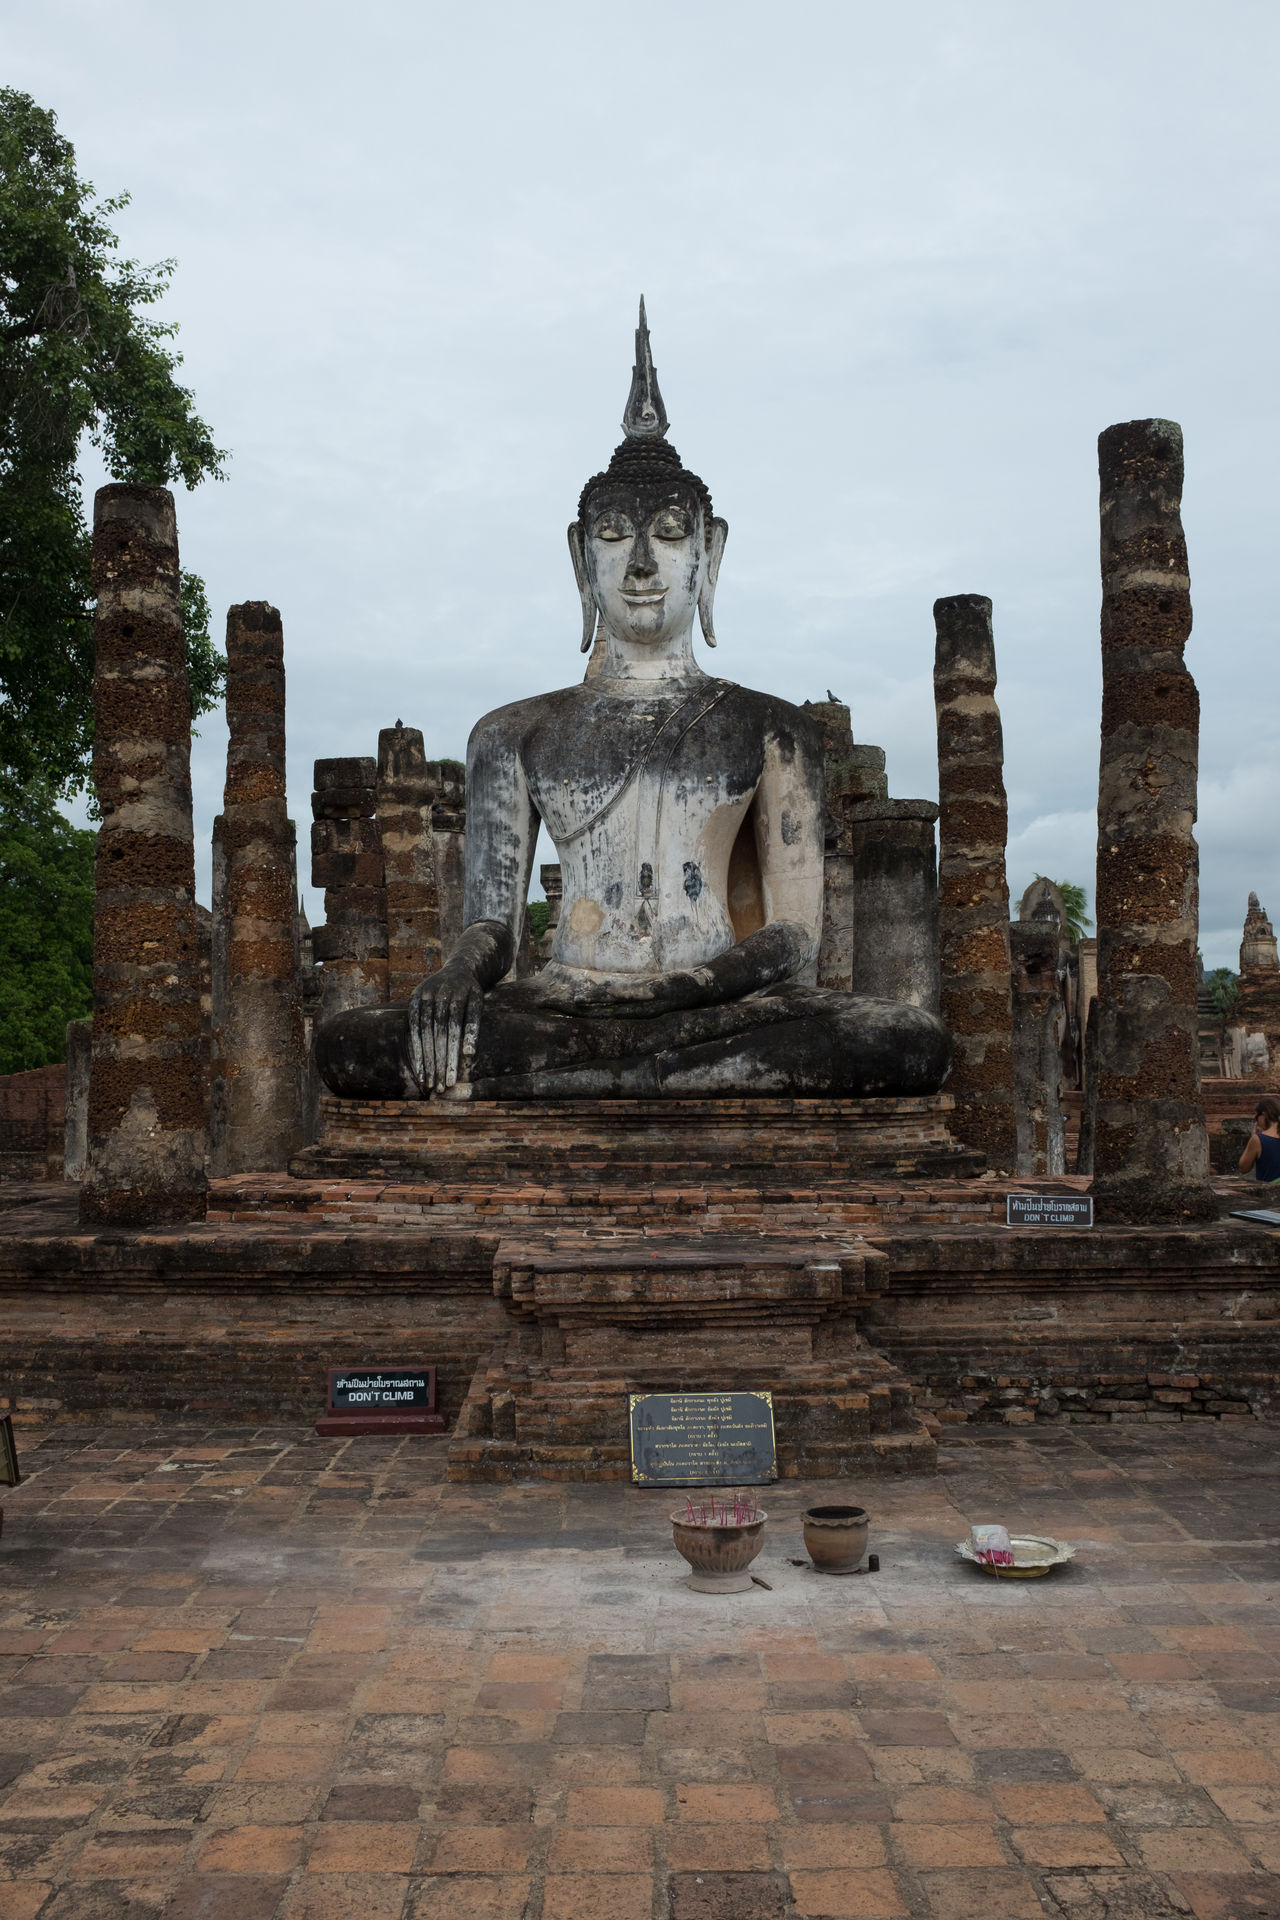 Ancient Civilization Architecture Building Exterior Day History Human Representation Male Likeness No People Old Ruin Outdoors Place Of Worship Religion Sculpture Sky Spirituality Statue Sukhothai Sukhothaihistoricalpark Travel Destinations